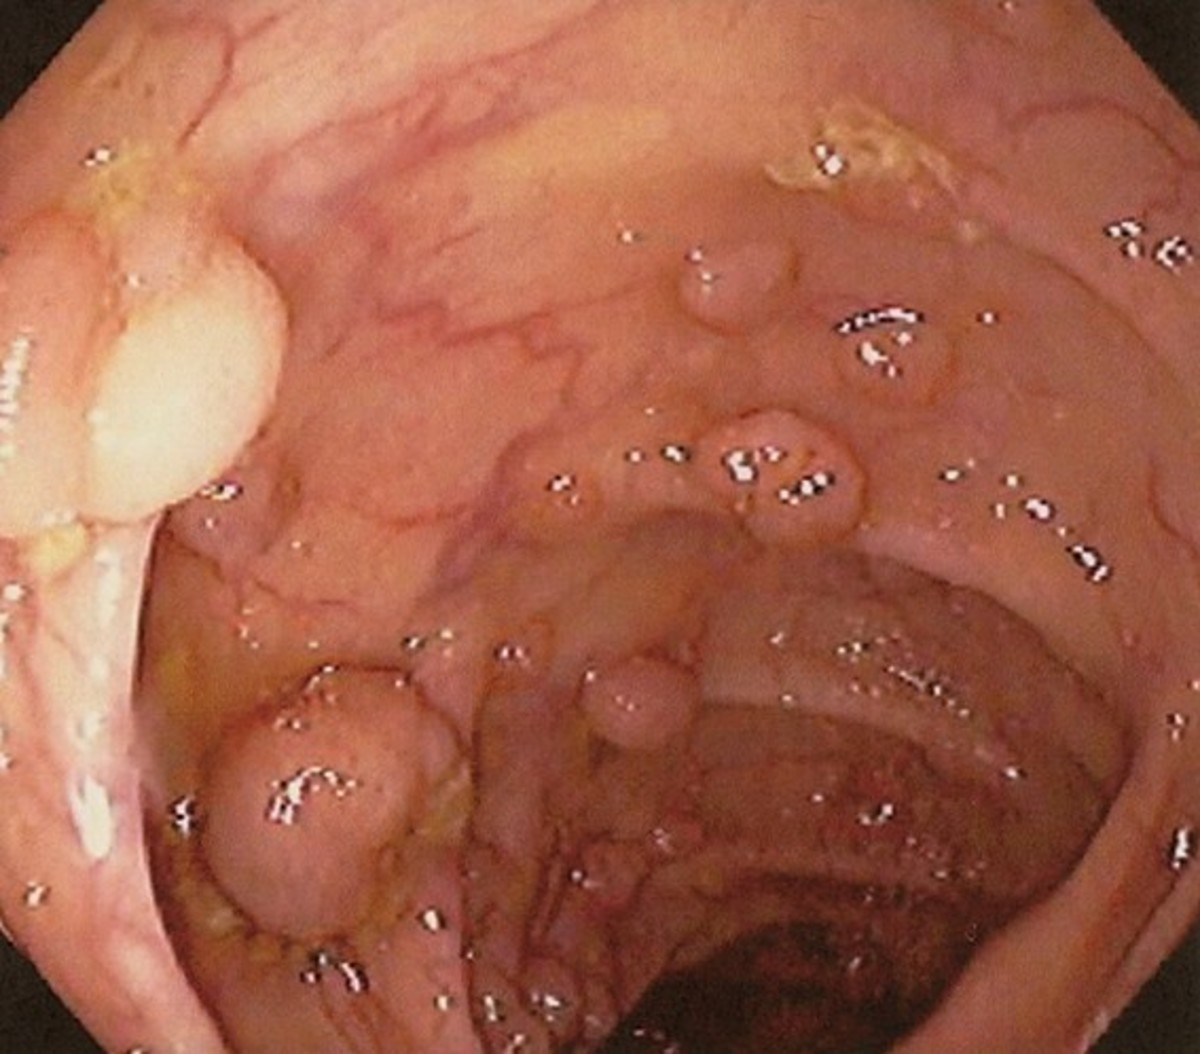 Colon Polyps - Pictures, Treatment, Types, Symptoms, Causes